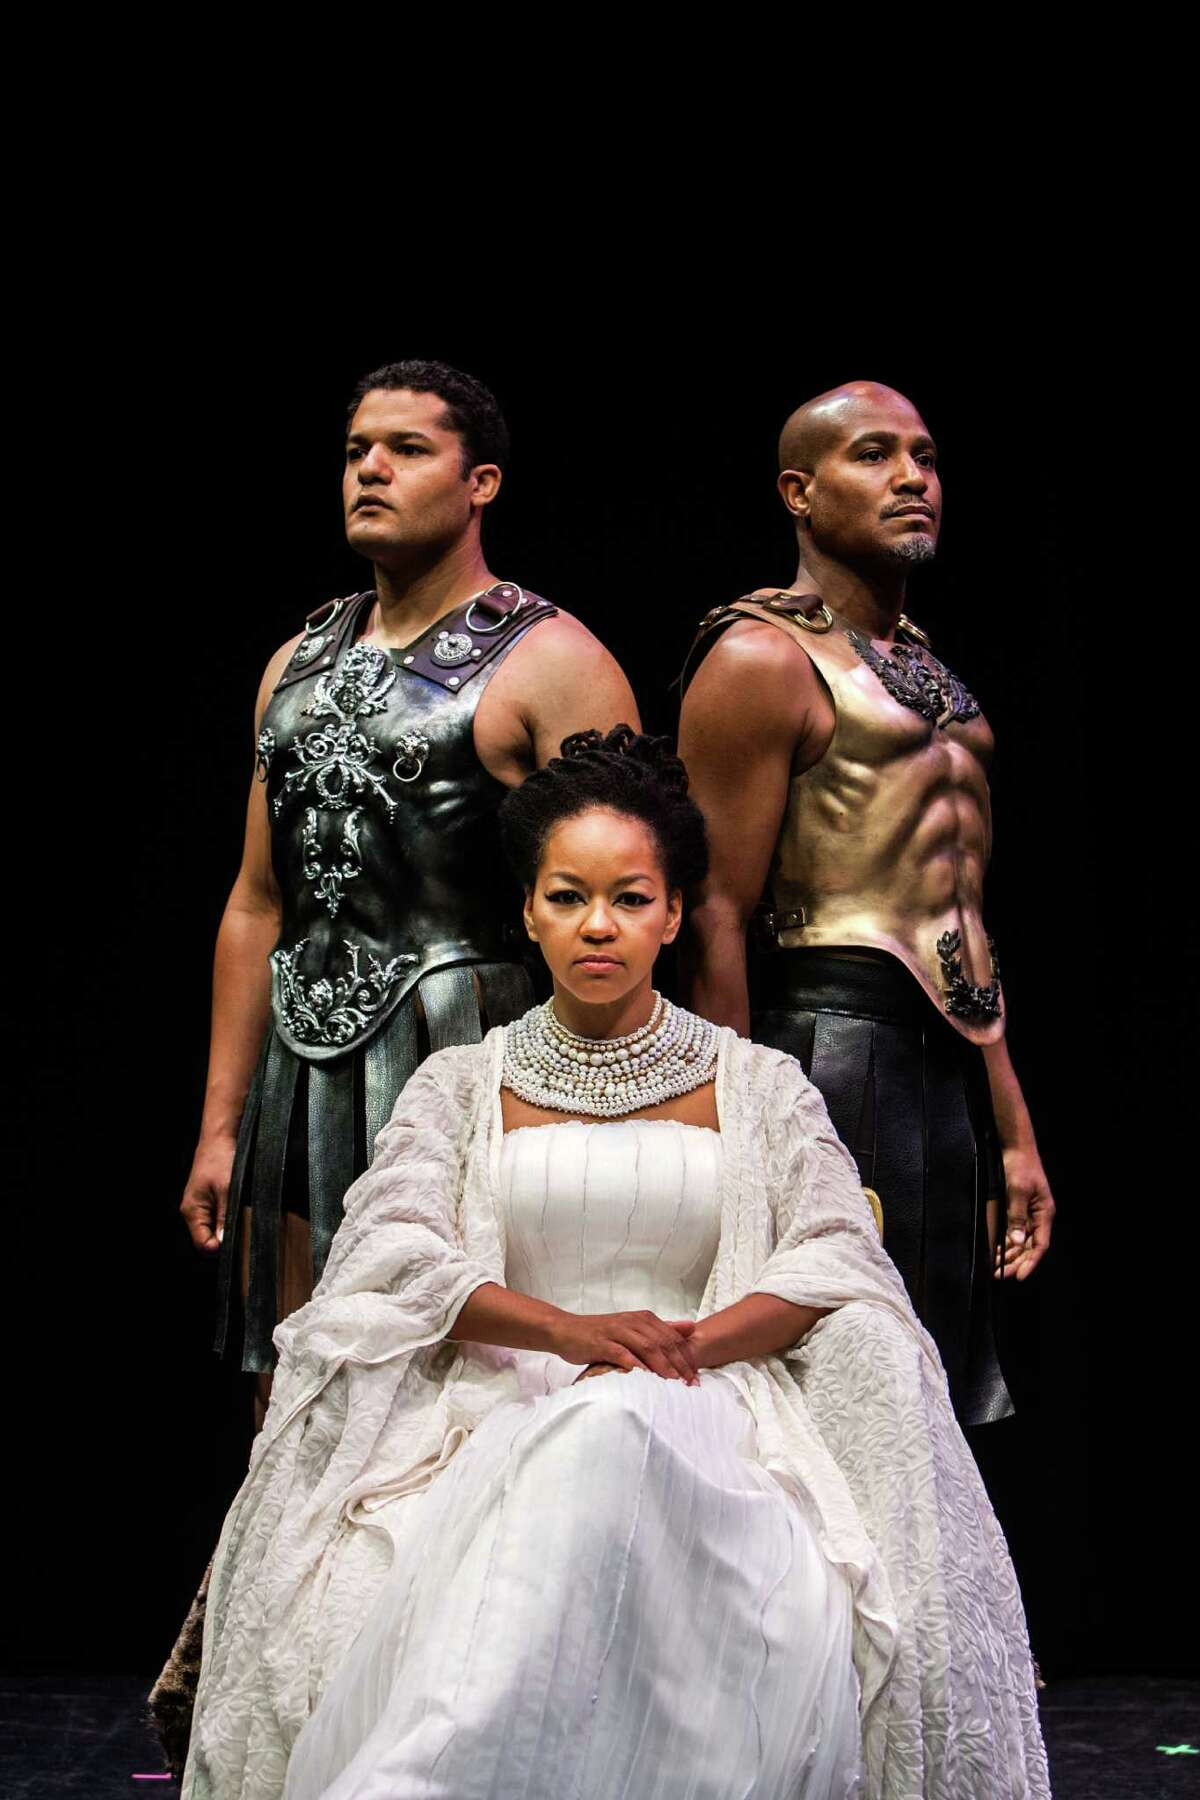 """Brandon Dirden, Seth Gilliam and Crystal Dickinson who will star as Ceasar, Cleopatra and Antony in Shakespeare's """"Antony and Cleopatra"""" at the Wortham Theater on the campus of University of Houston July 20, 2013. (Michael Starghill, Jr.)"""